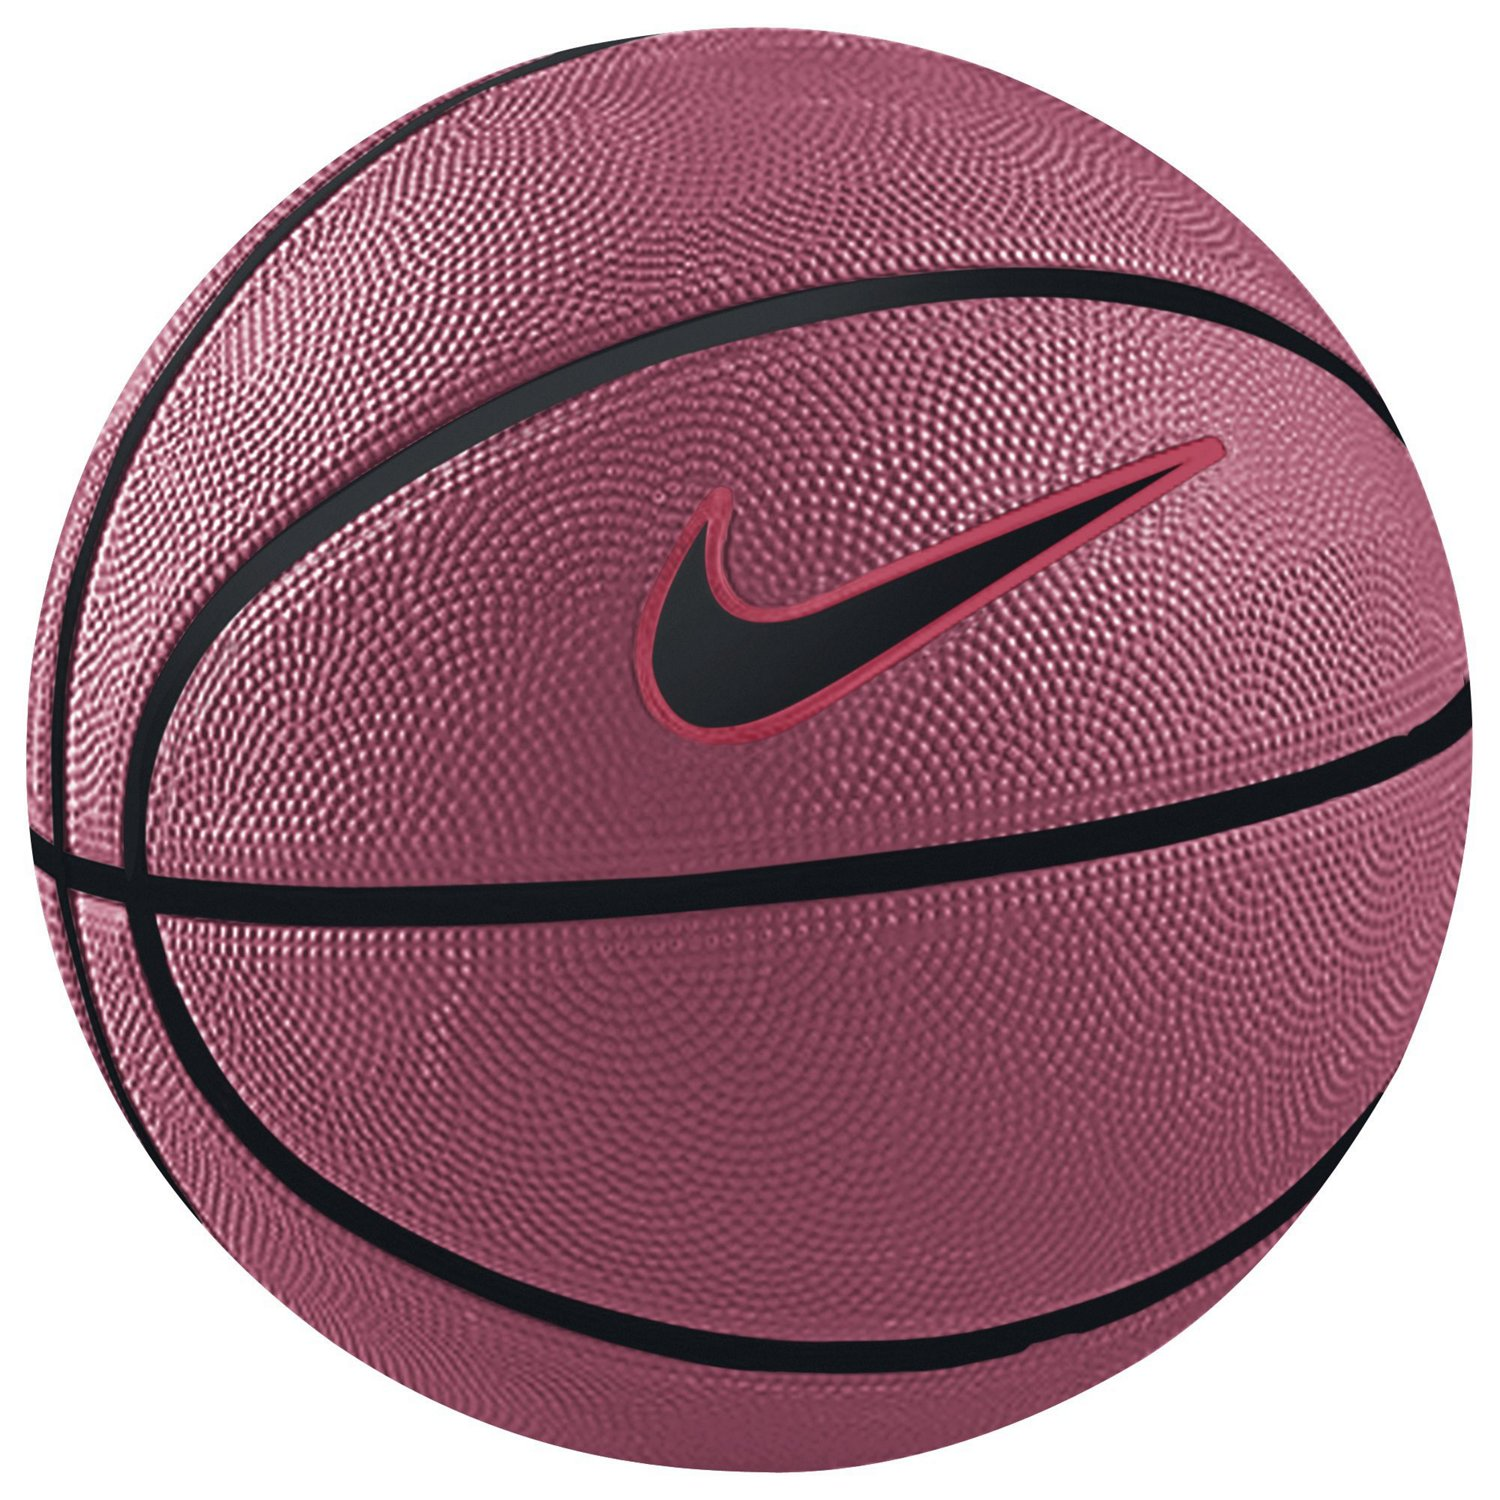 Display product reviews for Nike Baller Outdoor Mini Basketball 7e536f034fdc4